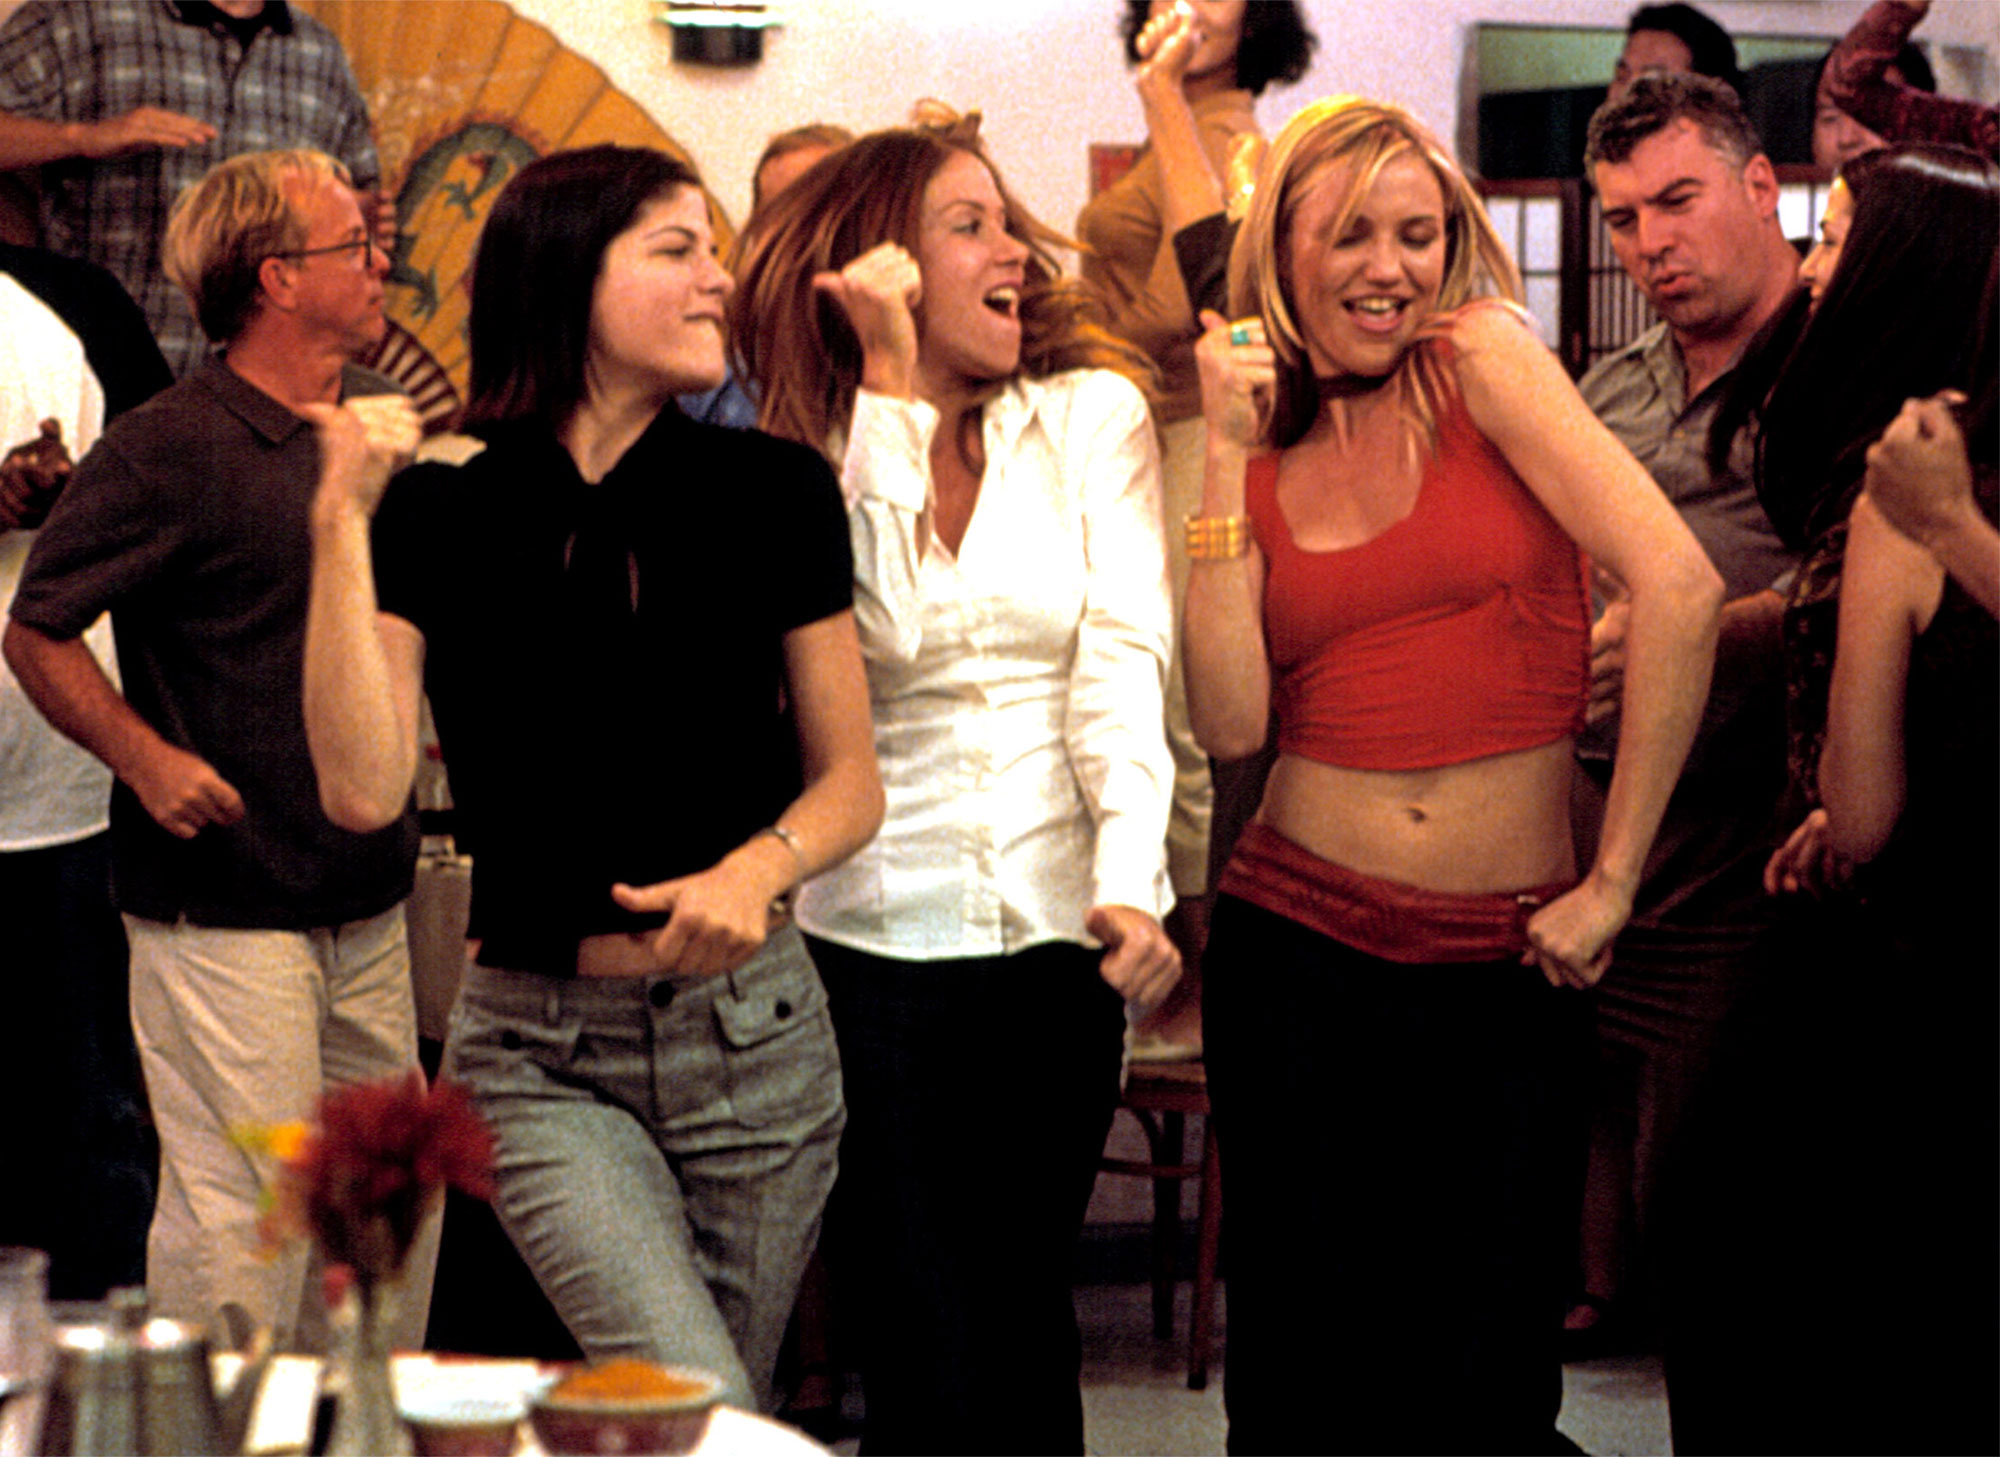 THE SWEETEST THING, Selma Blair, Christina Applegate, Cameron Diaz, 2002 (c) Columbia/courtesy Evere